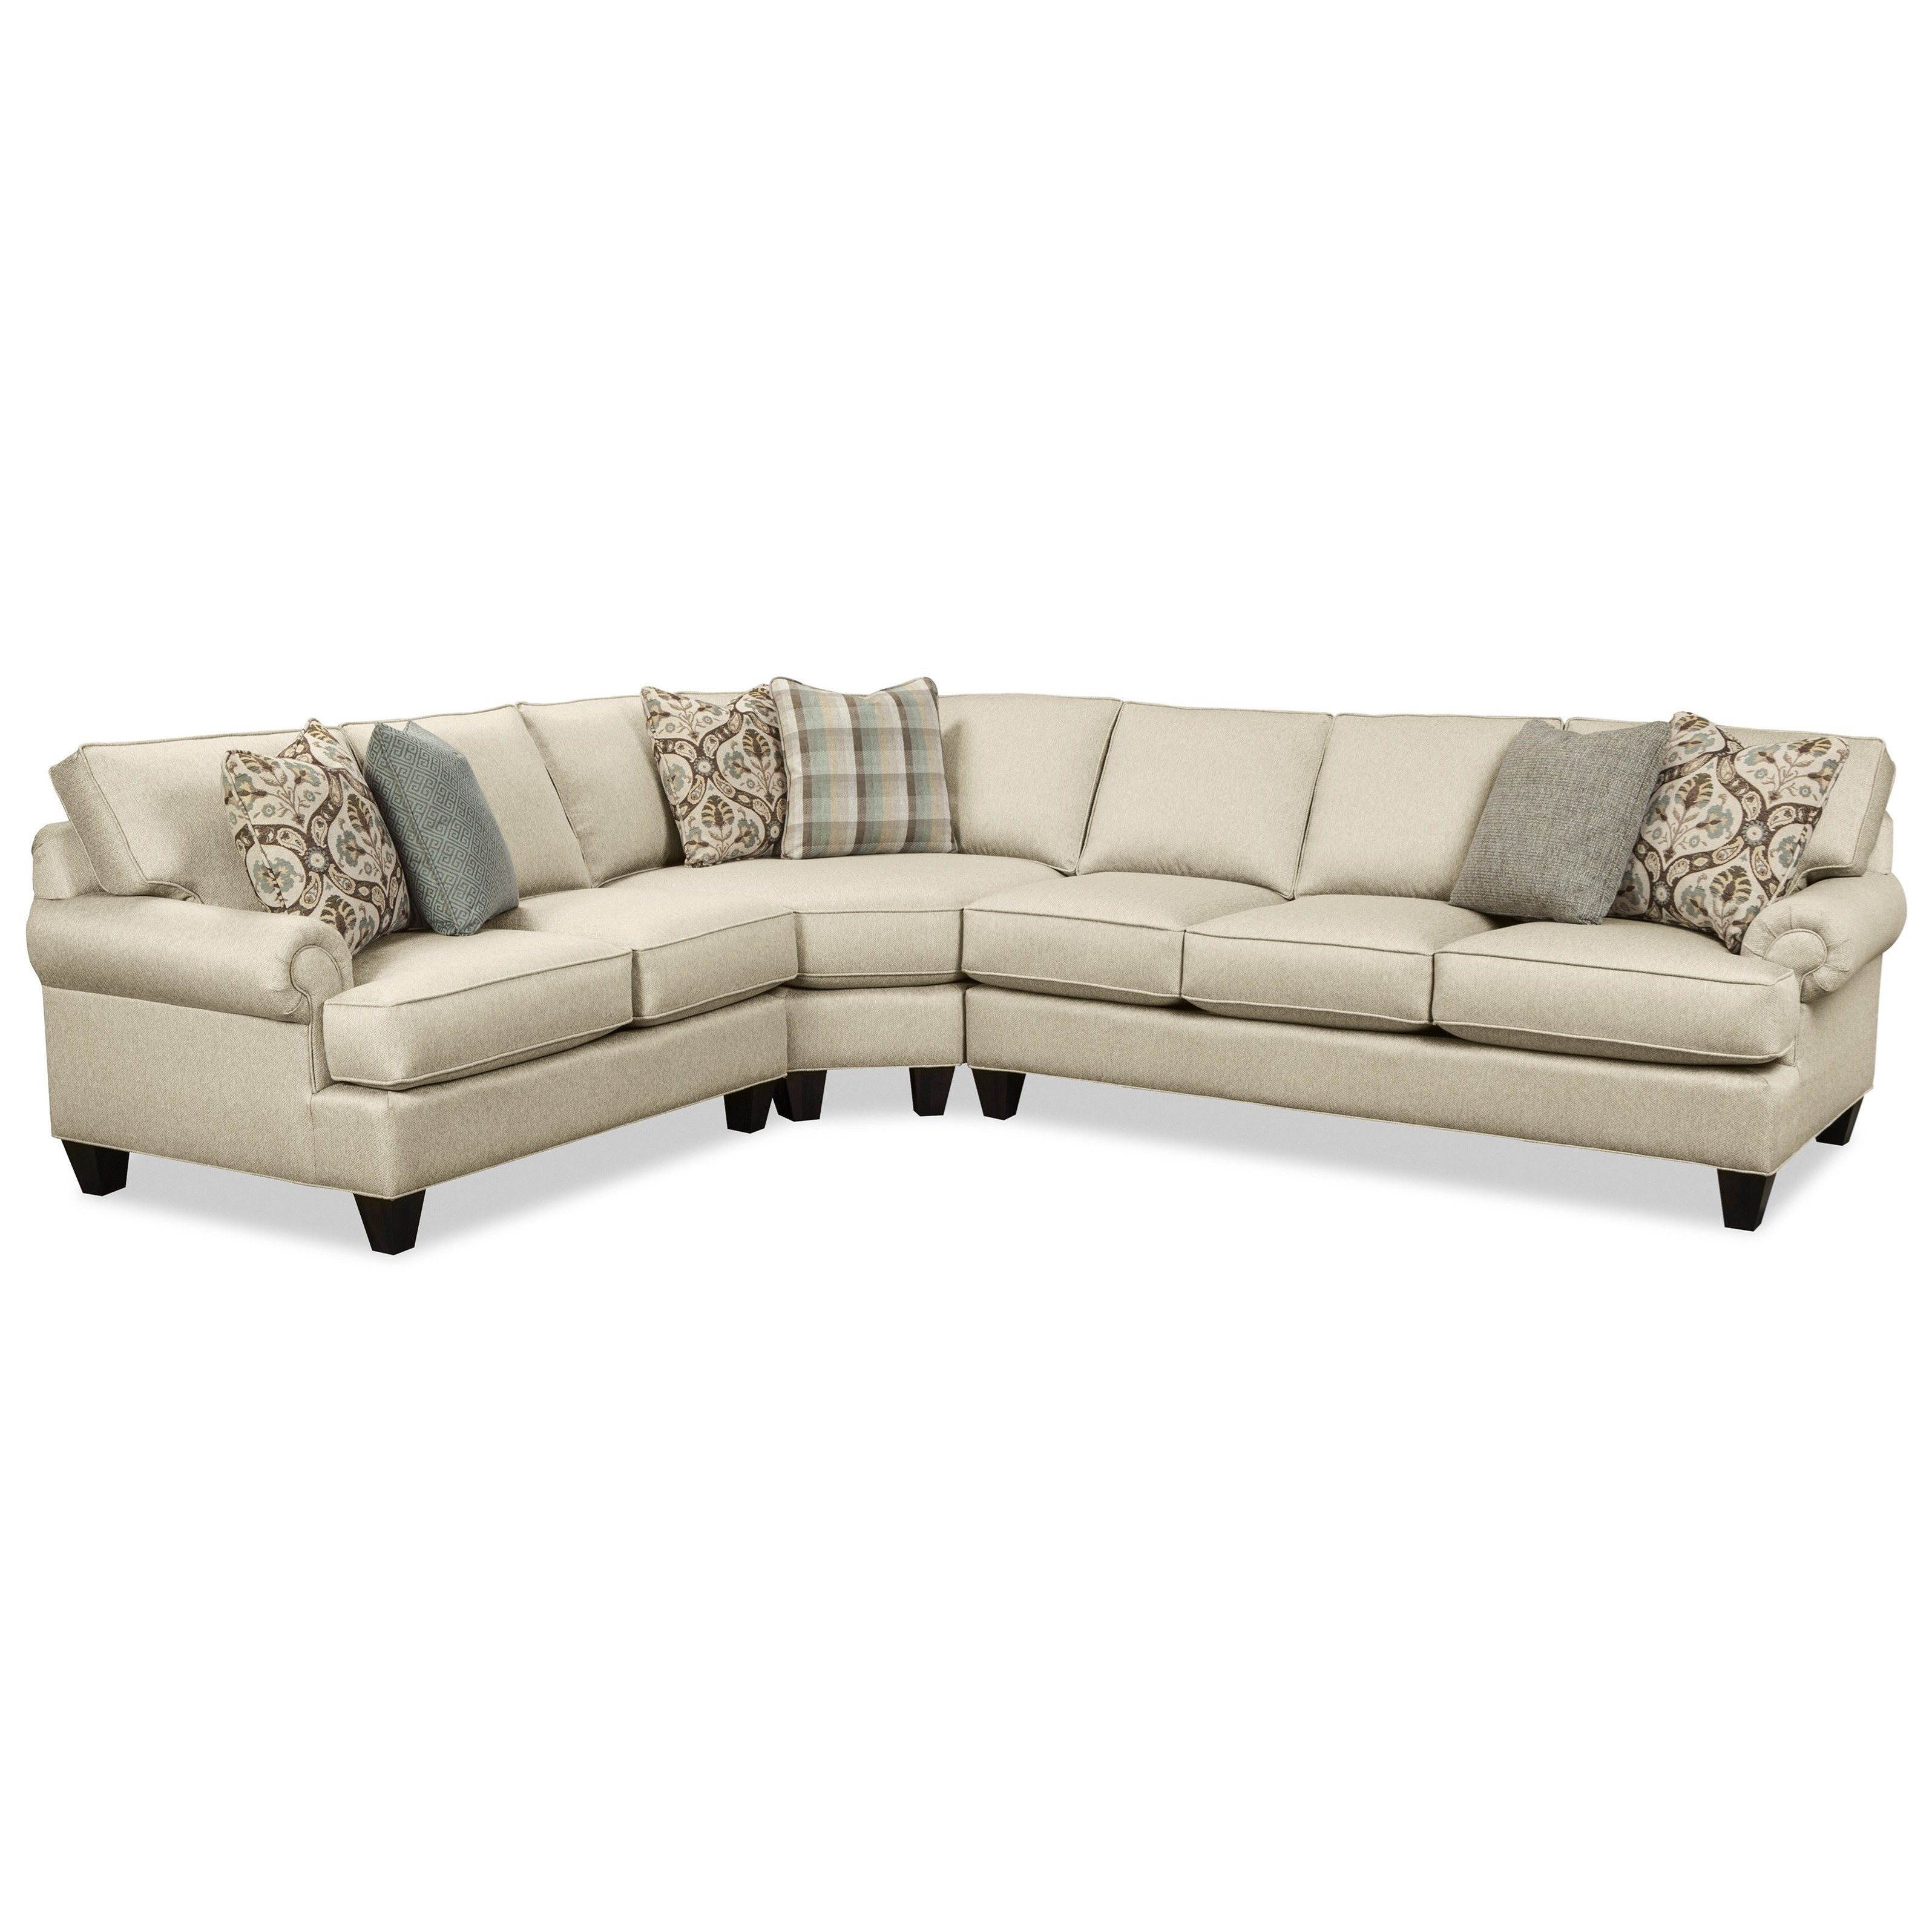 Craftmaster C9 Custom Collection Customizable Three Piece Sectional with Tatum Dark Grey 2 Piece Sectionals With Raf Chaise (Image 1 of 30)